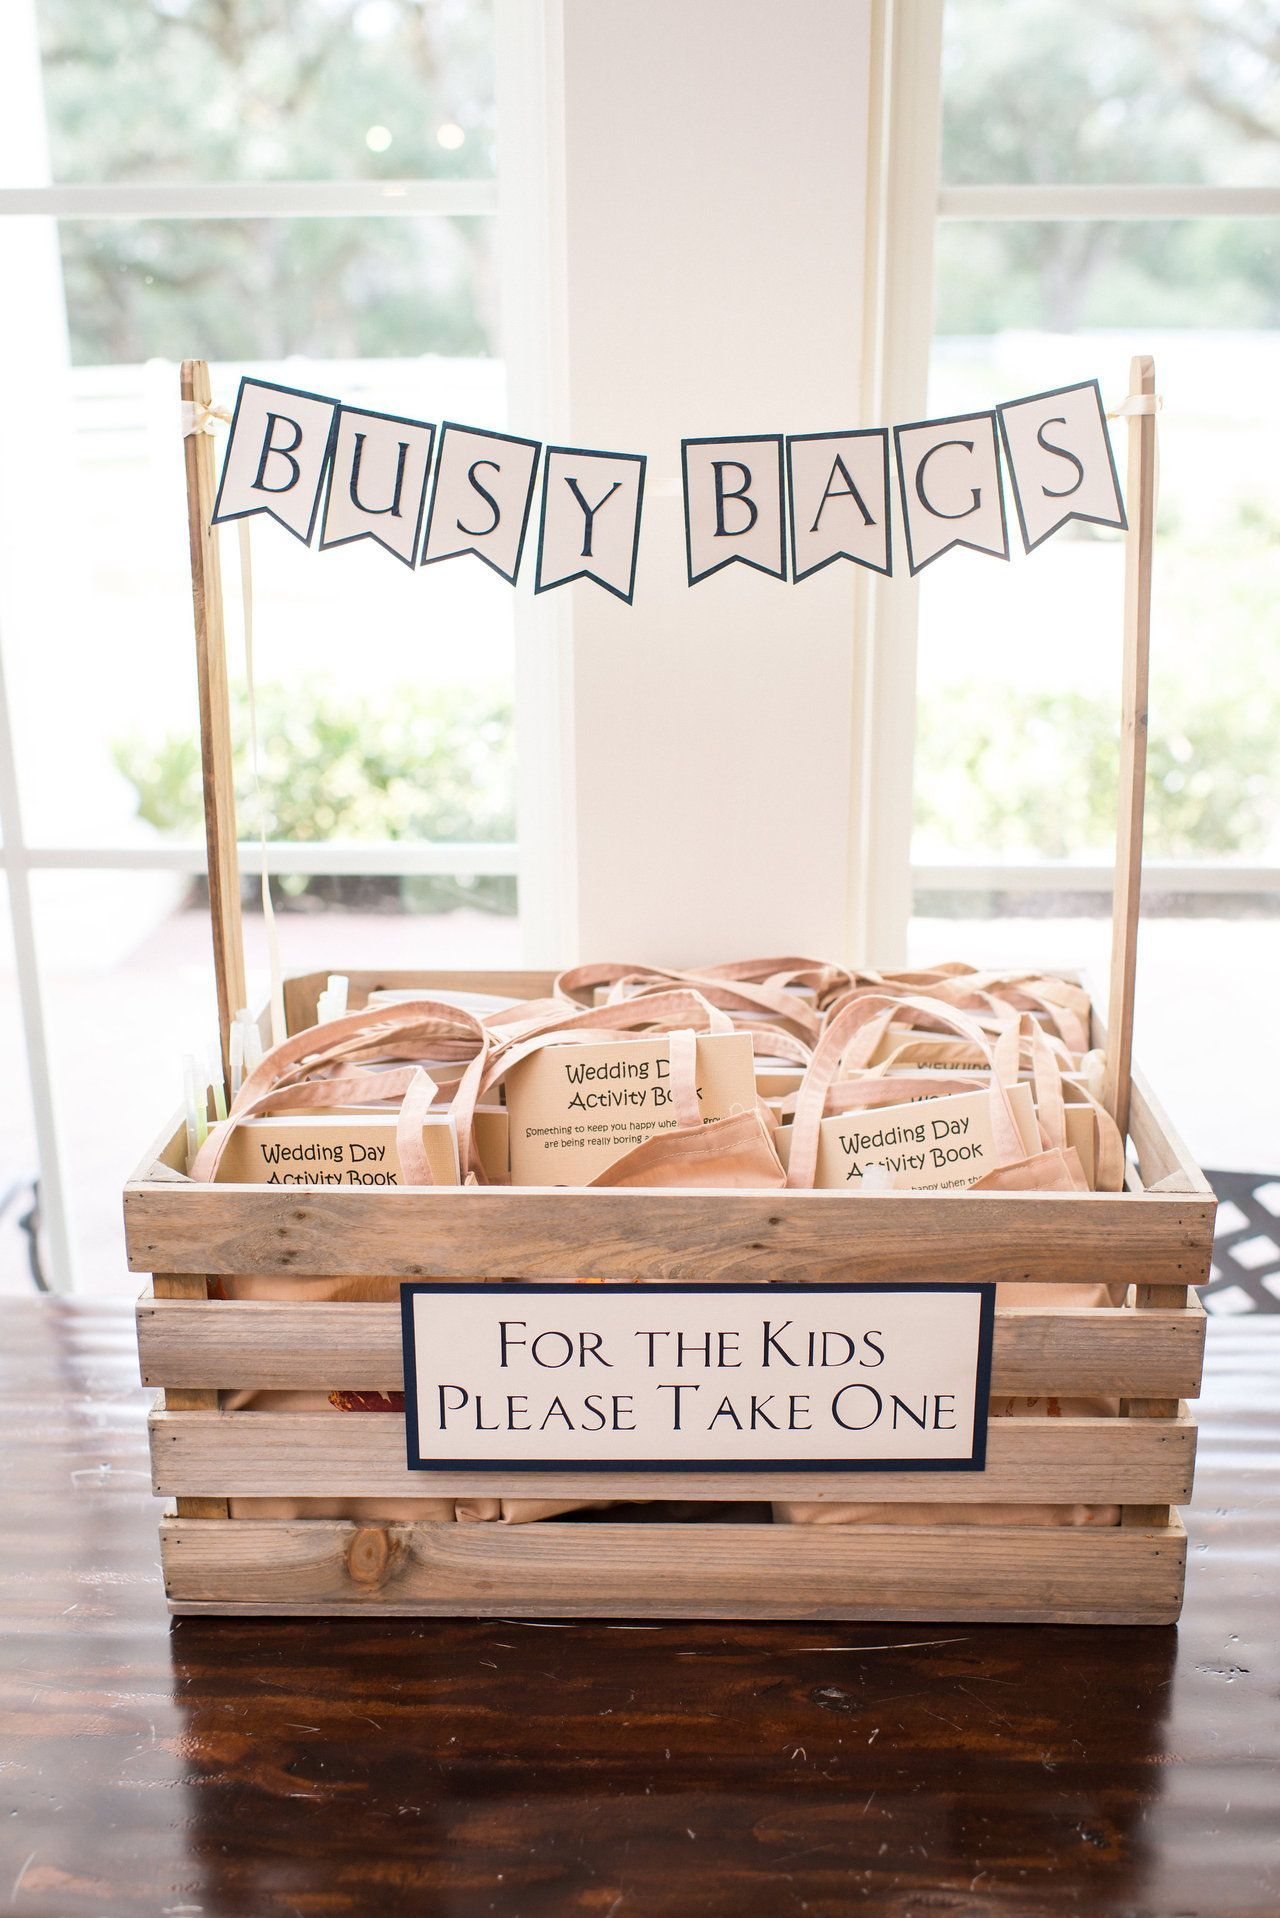 Such a cute wedding idea for your guests who are children